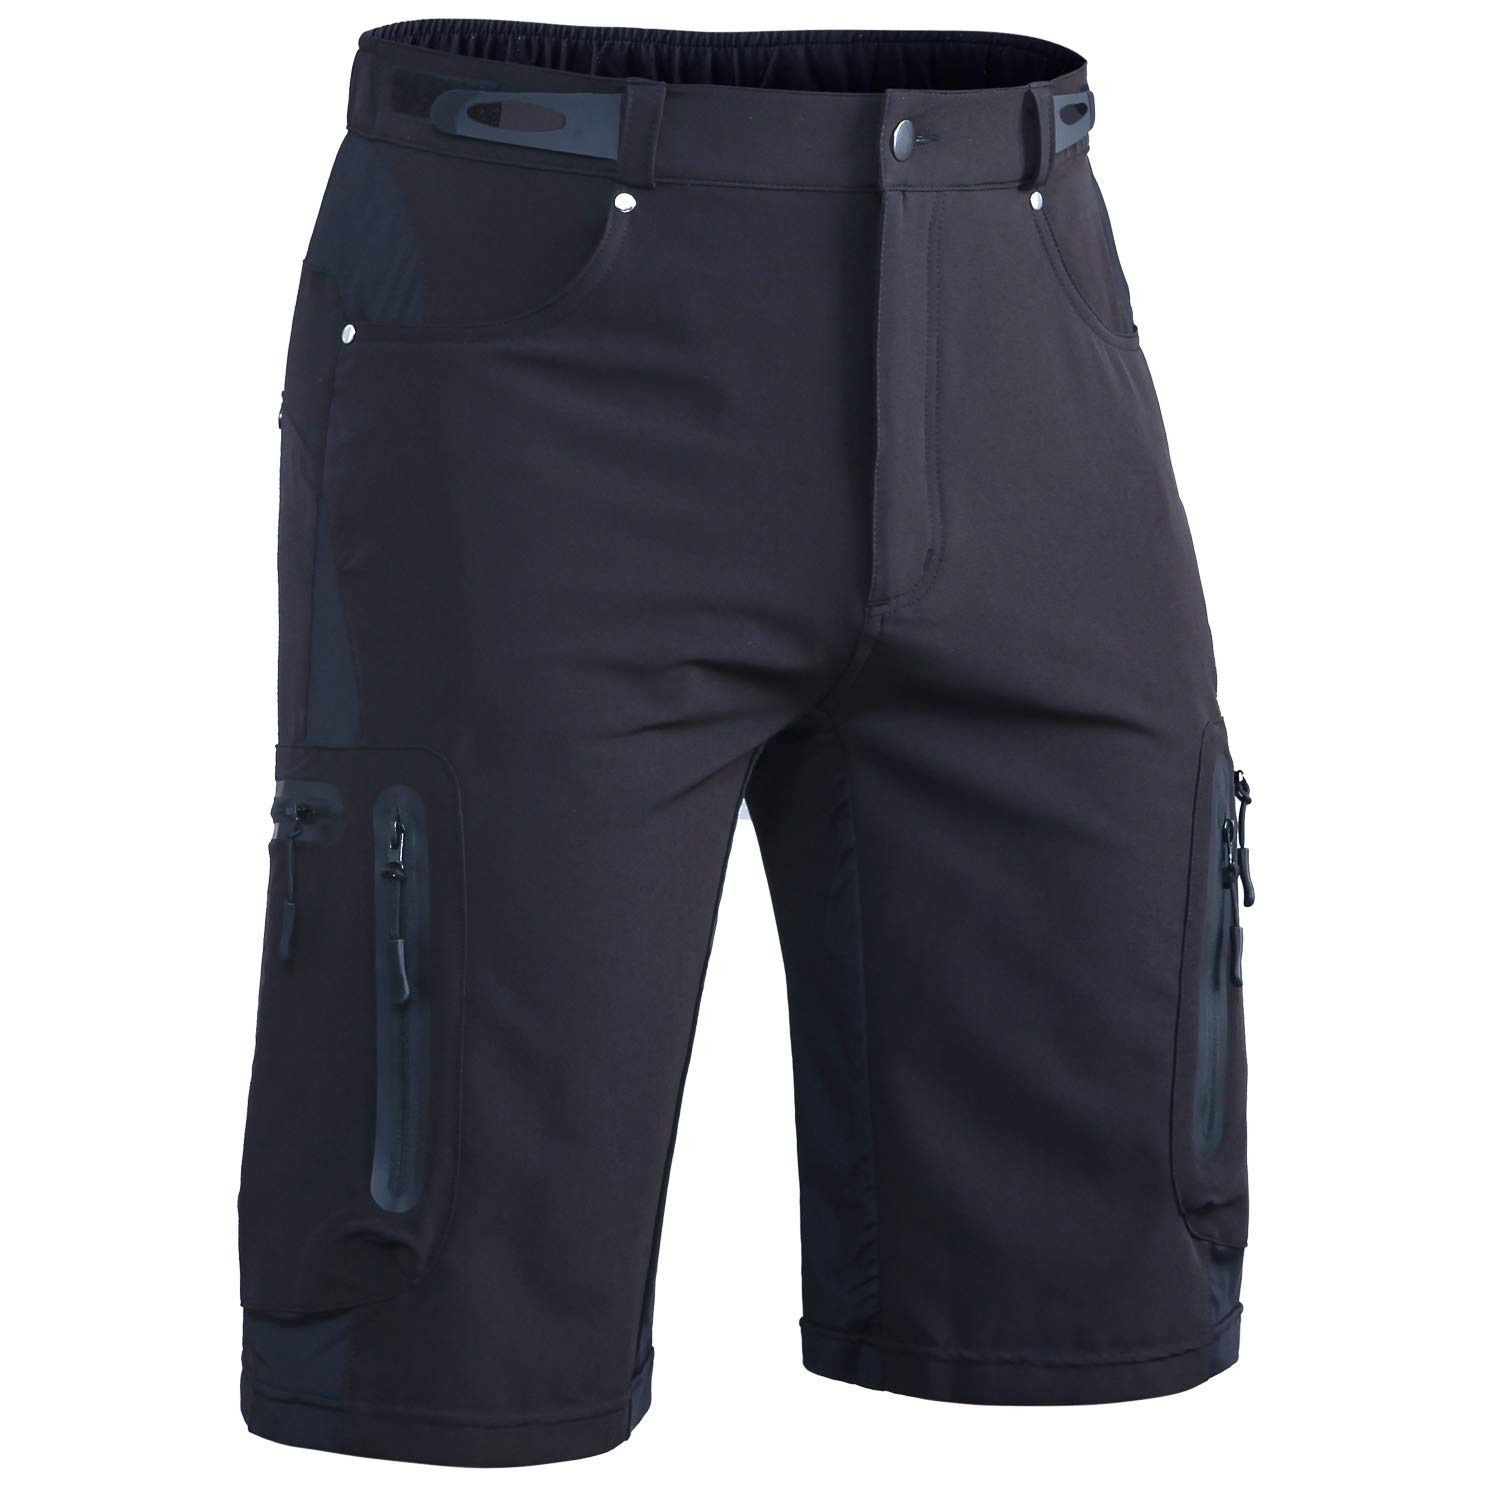 Hiauspor Men Hiking Shorts Lightweight Outdoor Quick Dry Shorts with Zipper Pockets Black by Hiauspor